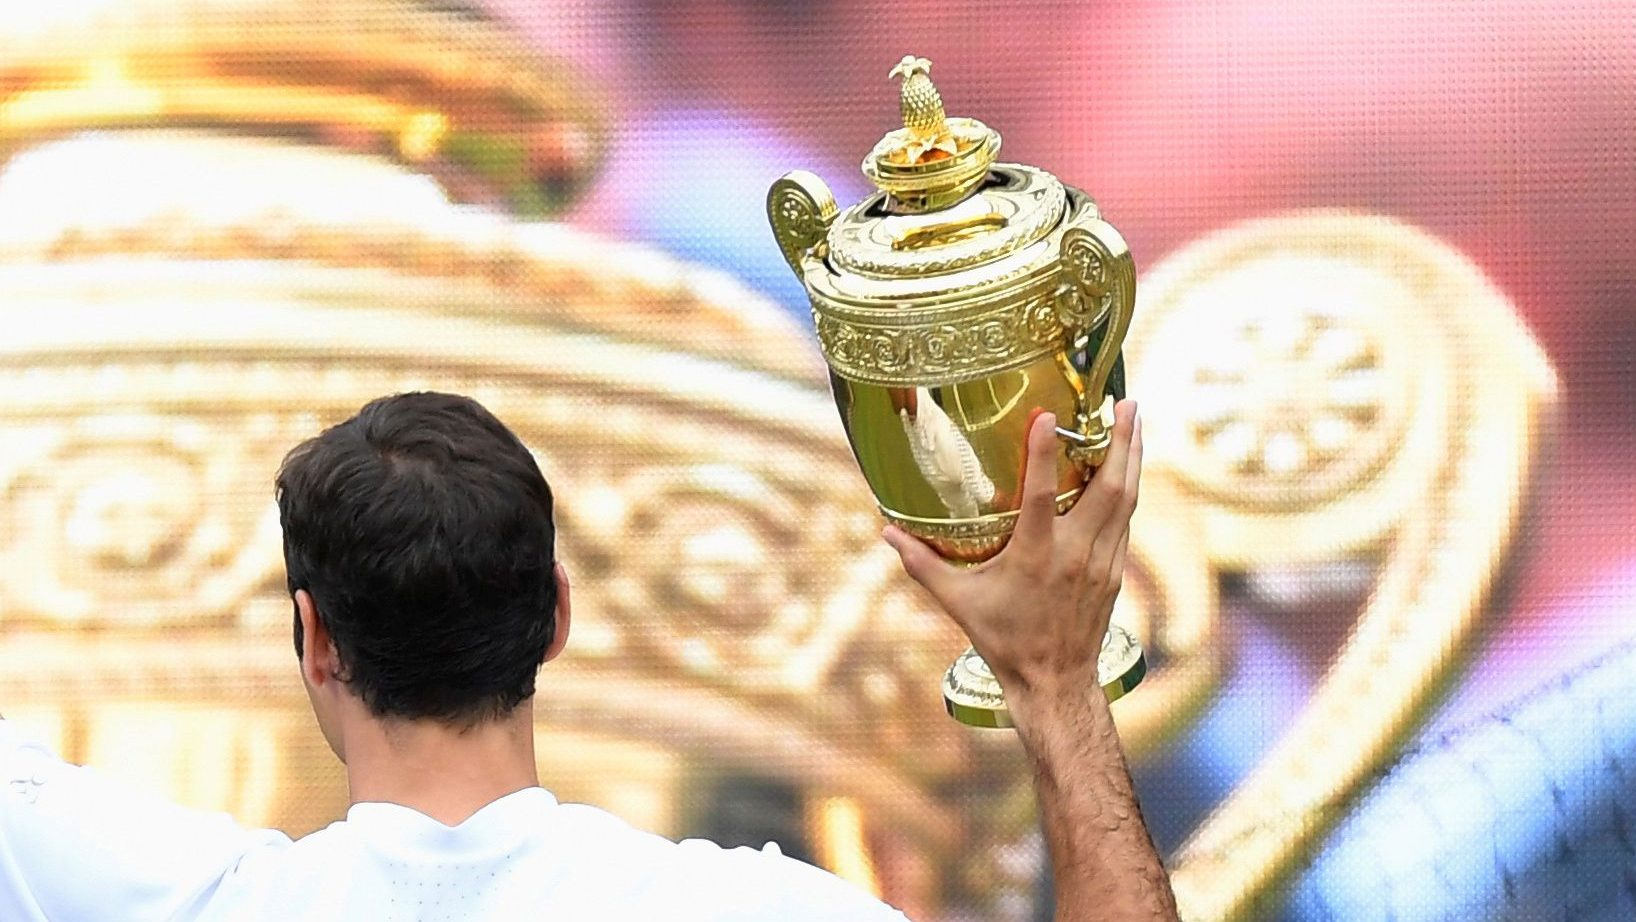 Tennis - Wimbledon - London, Britain - July 16, 2017   Switzerland's Roger Federer celebrates with the trophy after winning the final against Croatia's Marin Cilic    REUTERS/Toby Melville - RC159DA8E100